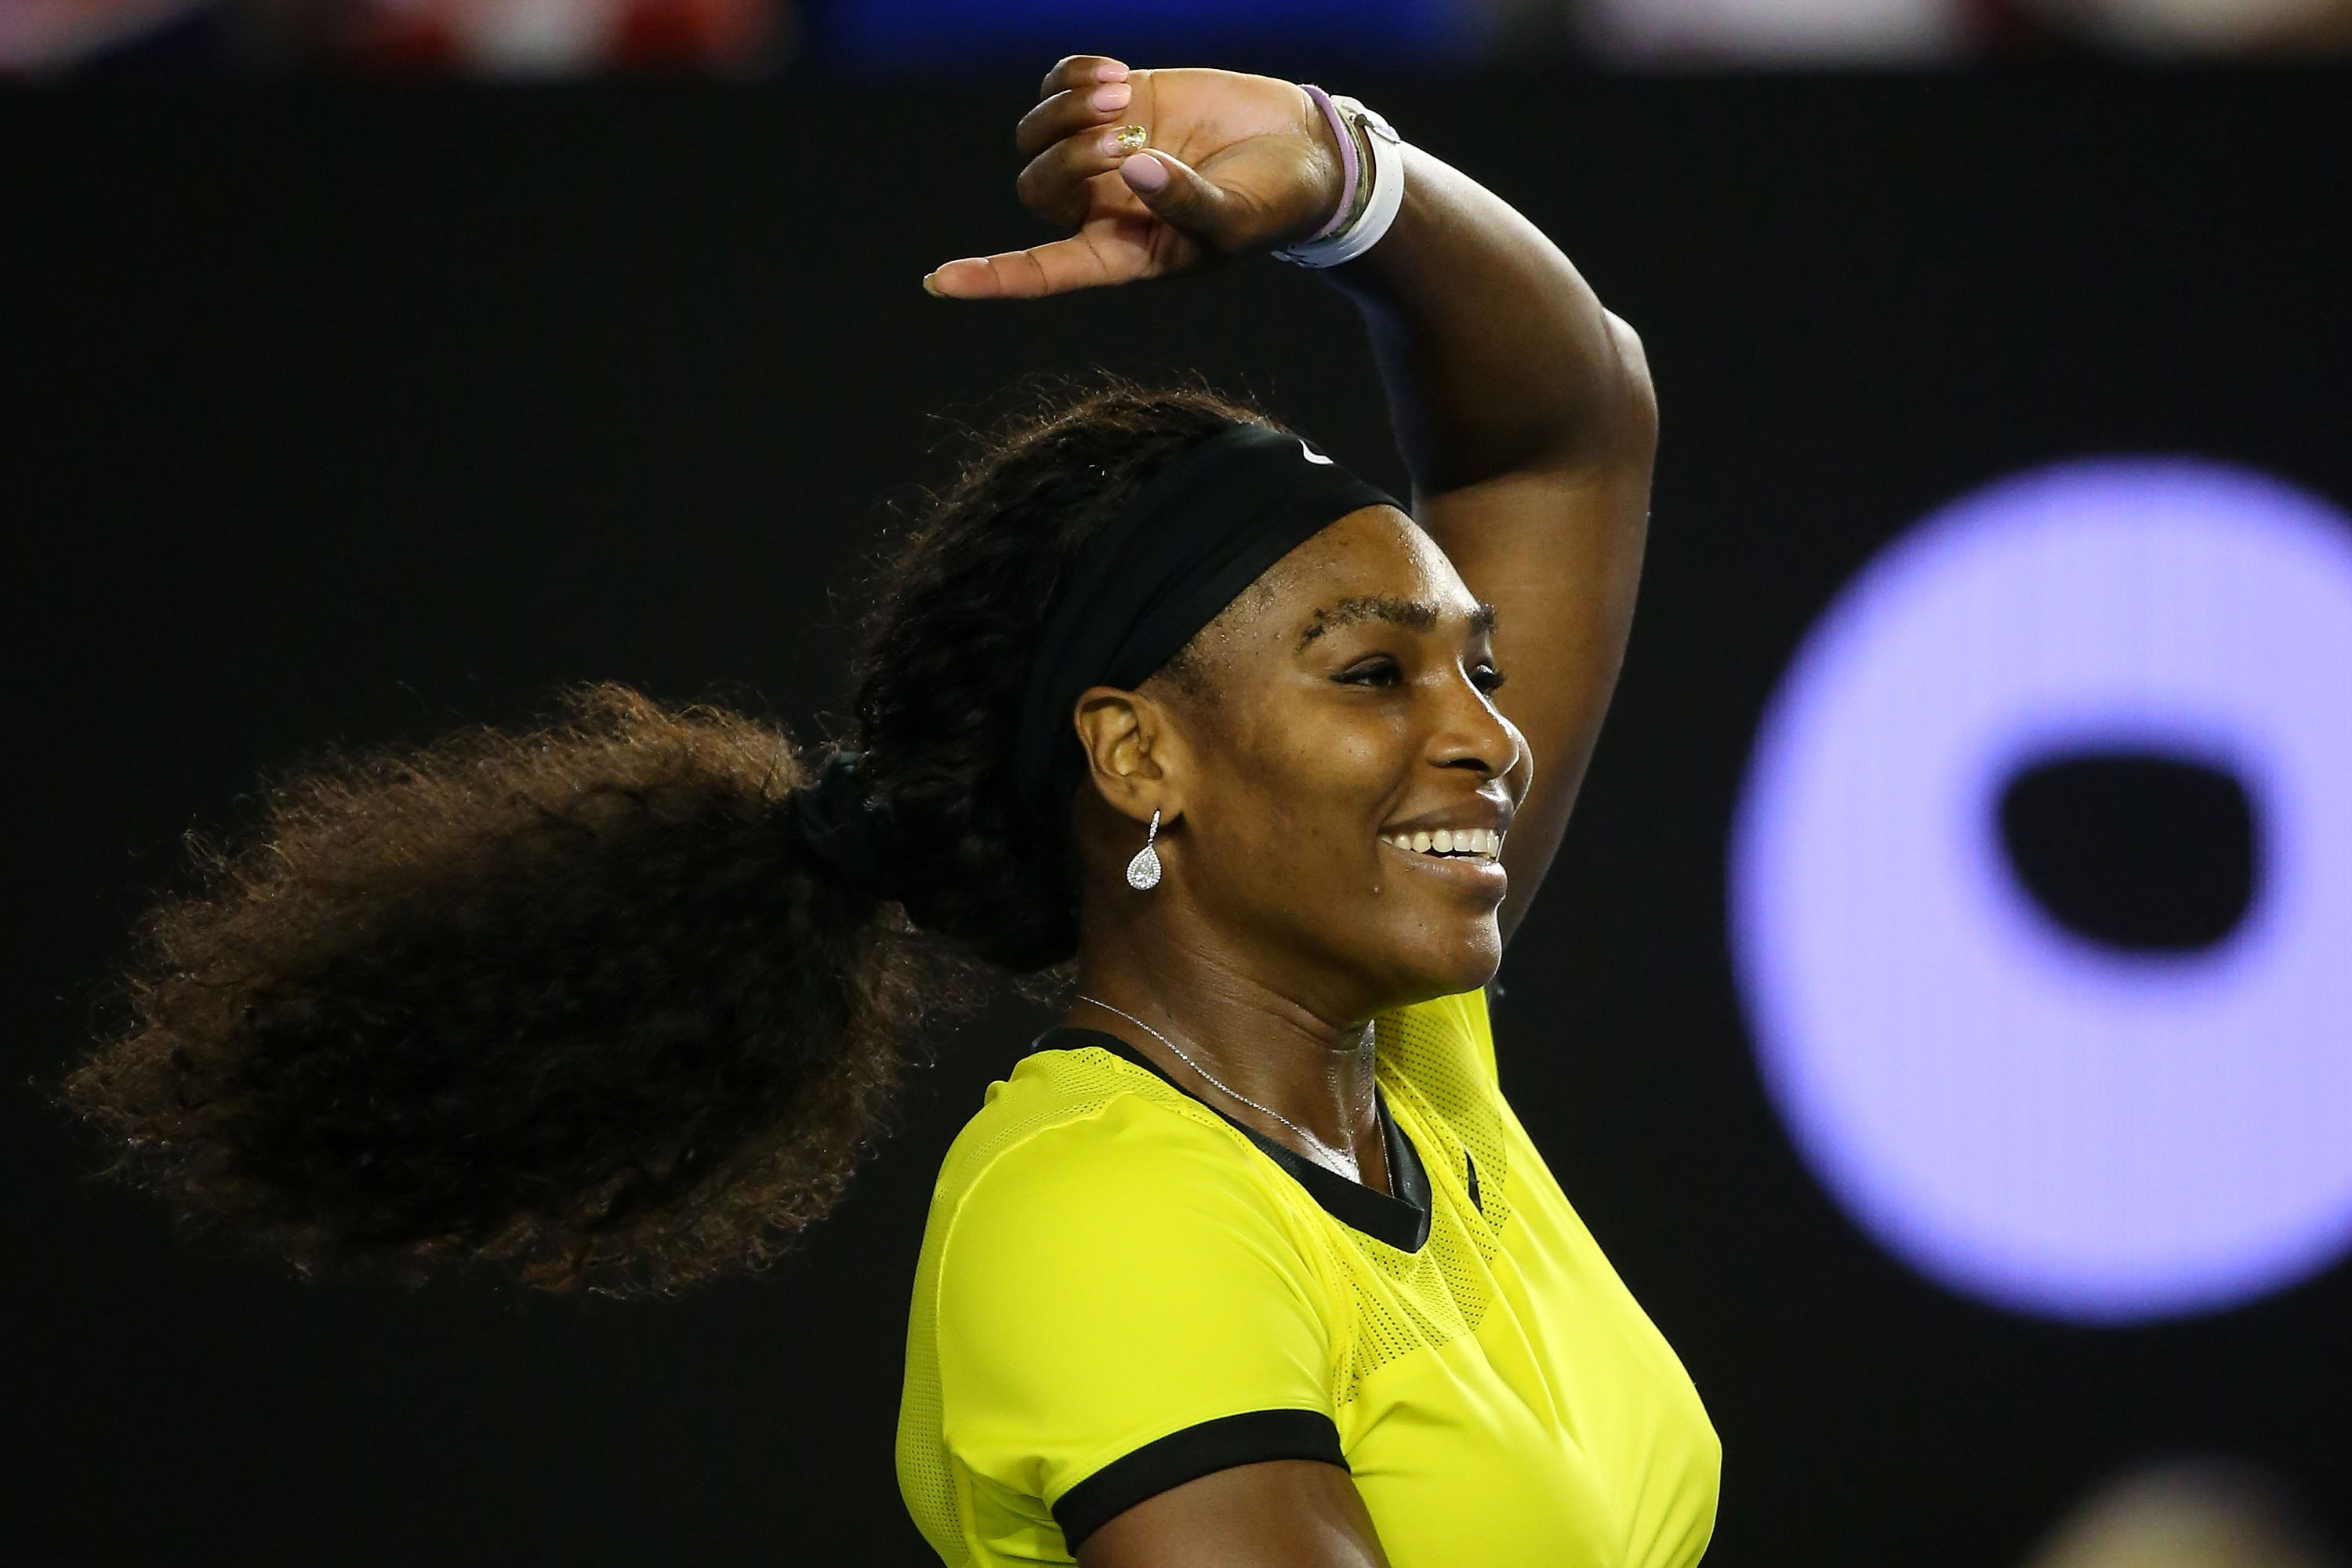 Serena Williams is seeking her 22nd Grand Slam singles title at the Australian Open.